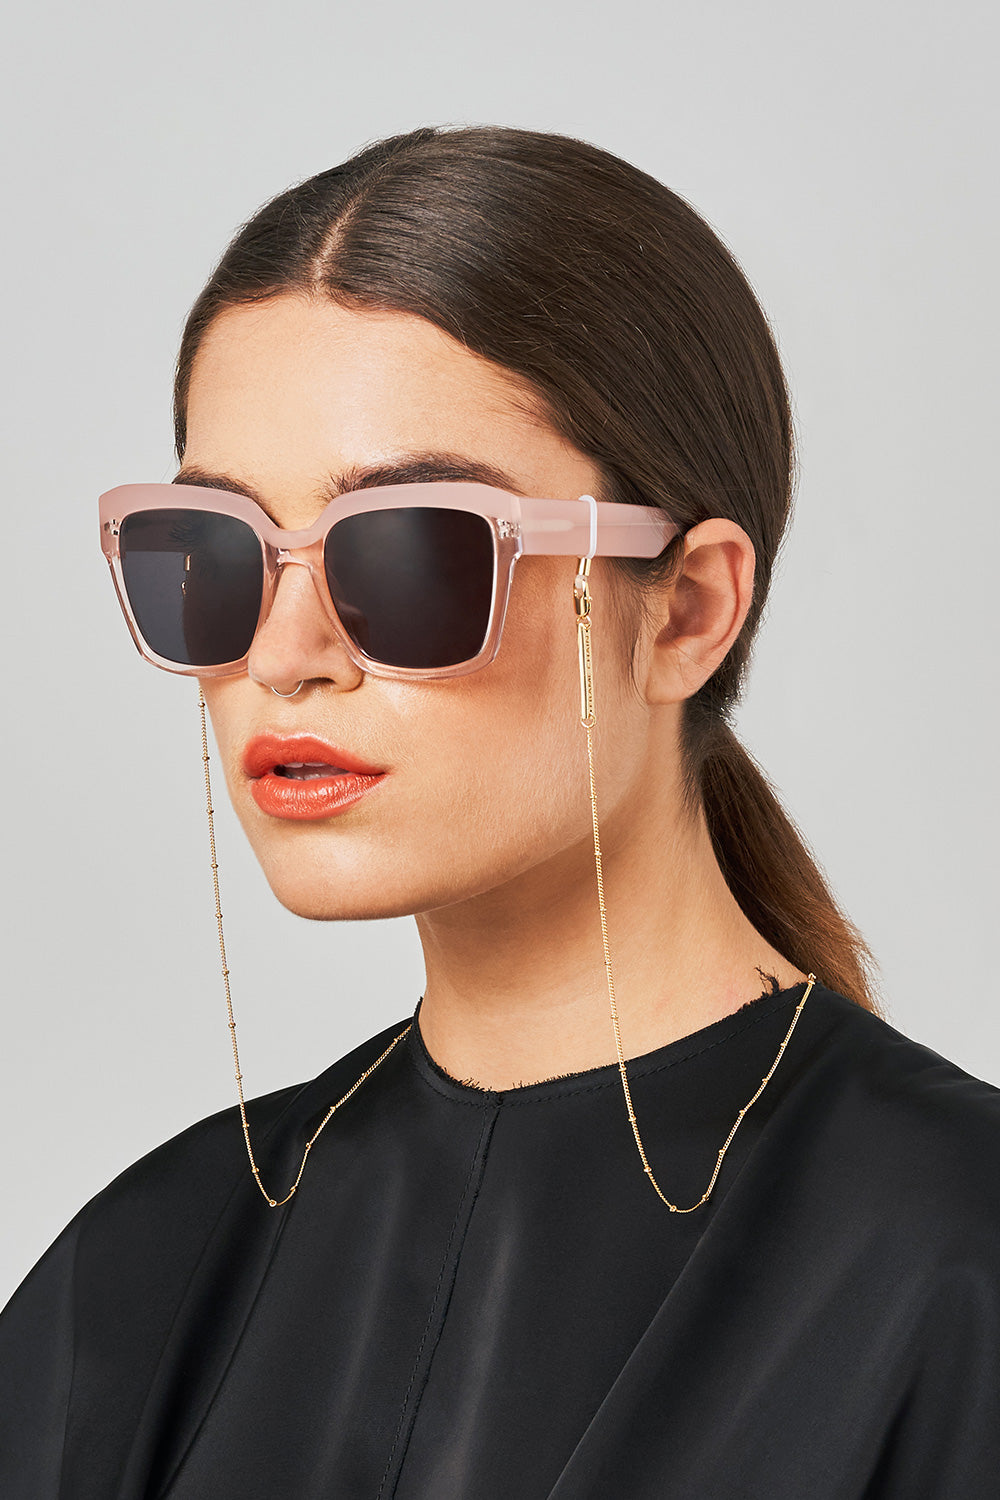 FRAME CHAIN | DOTTY in YELLOW GOLD | Glasses Chains | Eyewear Chains